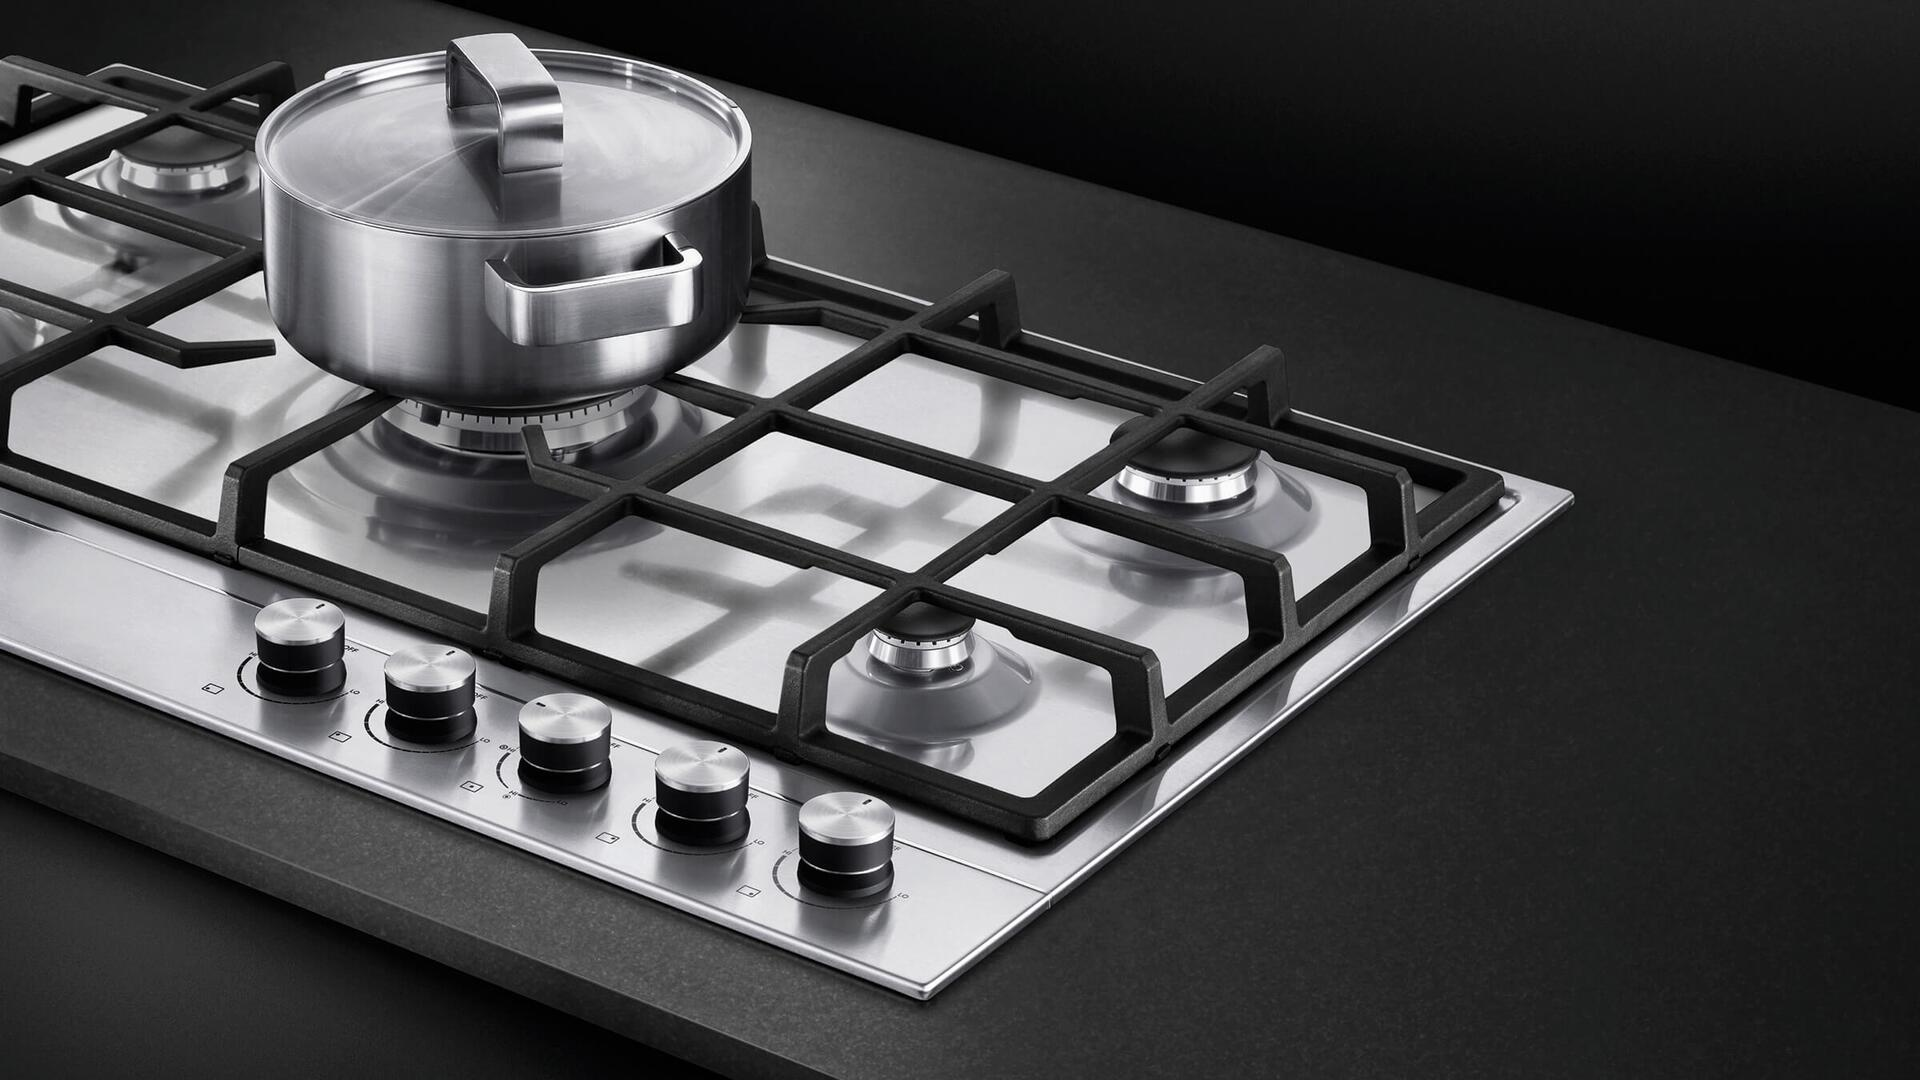 fisher paykel cg365dlpx1 36 inch gas sealed burner style. Black Bedroom Furniture Sets. Home Design Ideas